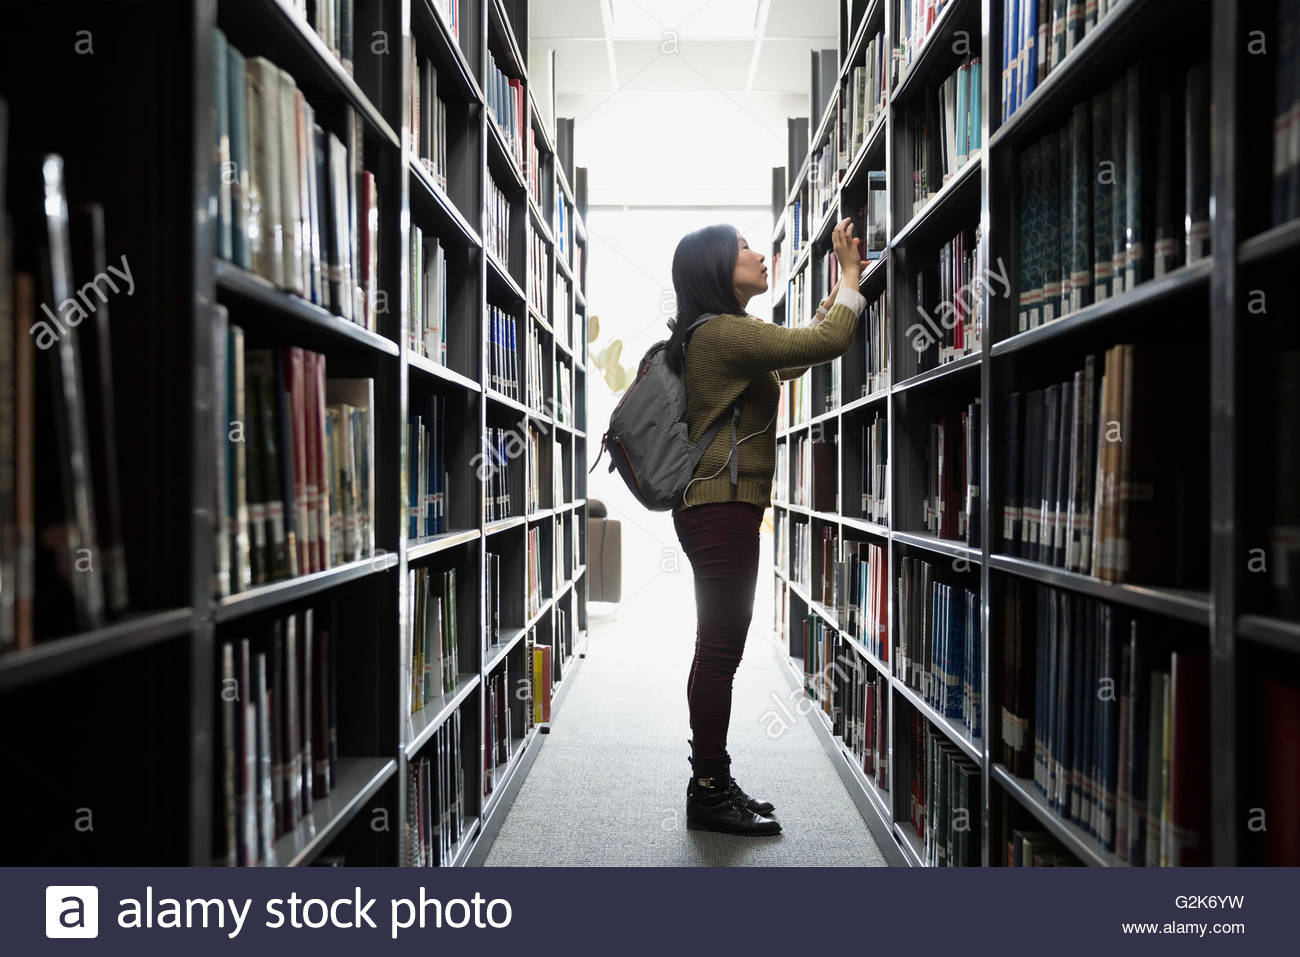 College student searching for book in library - Stock Image